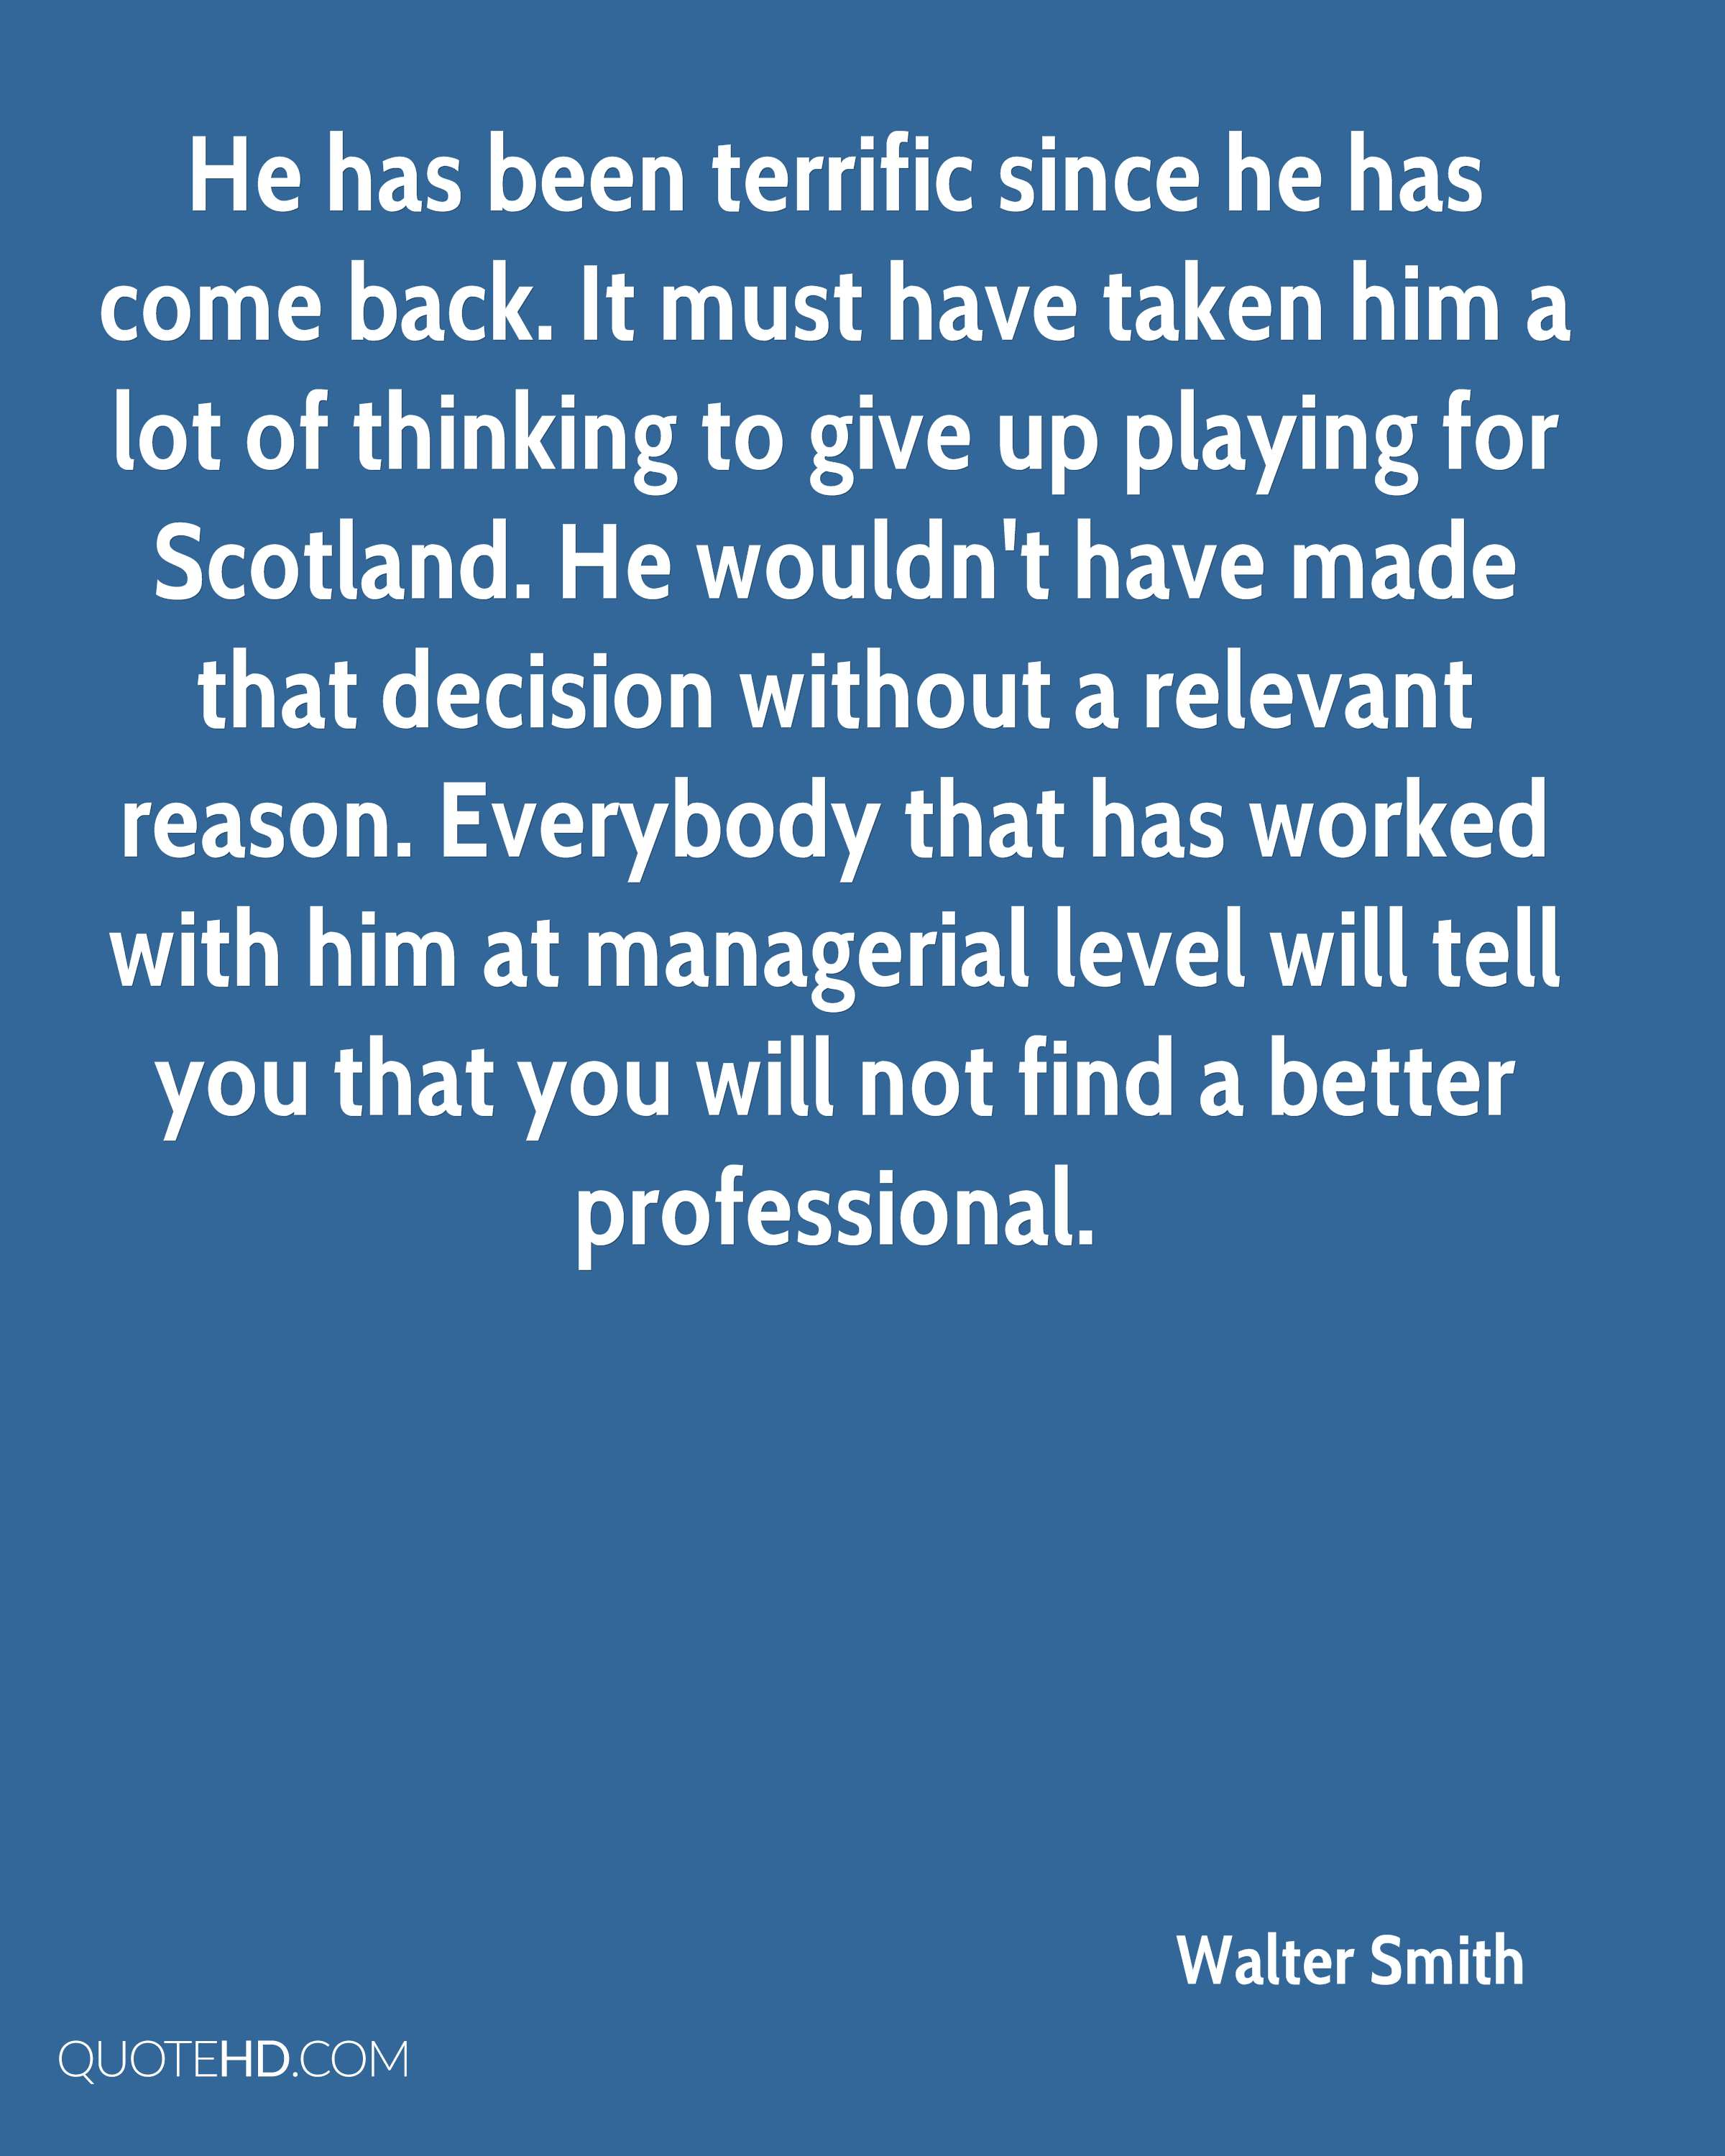 He has been terrific since he has come back. It must have taken him a lot of thinking to give up playing for Scotland. He wouldn't have made that decision without a relevant reason. Everybody that has worked with him at managerial level will tell you that you will not find a better professional.